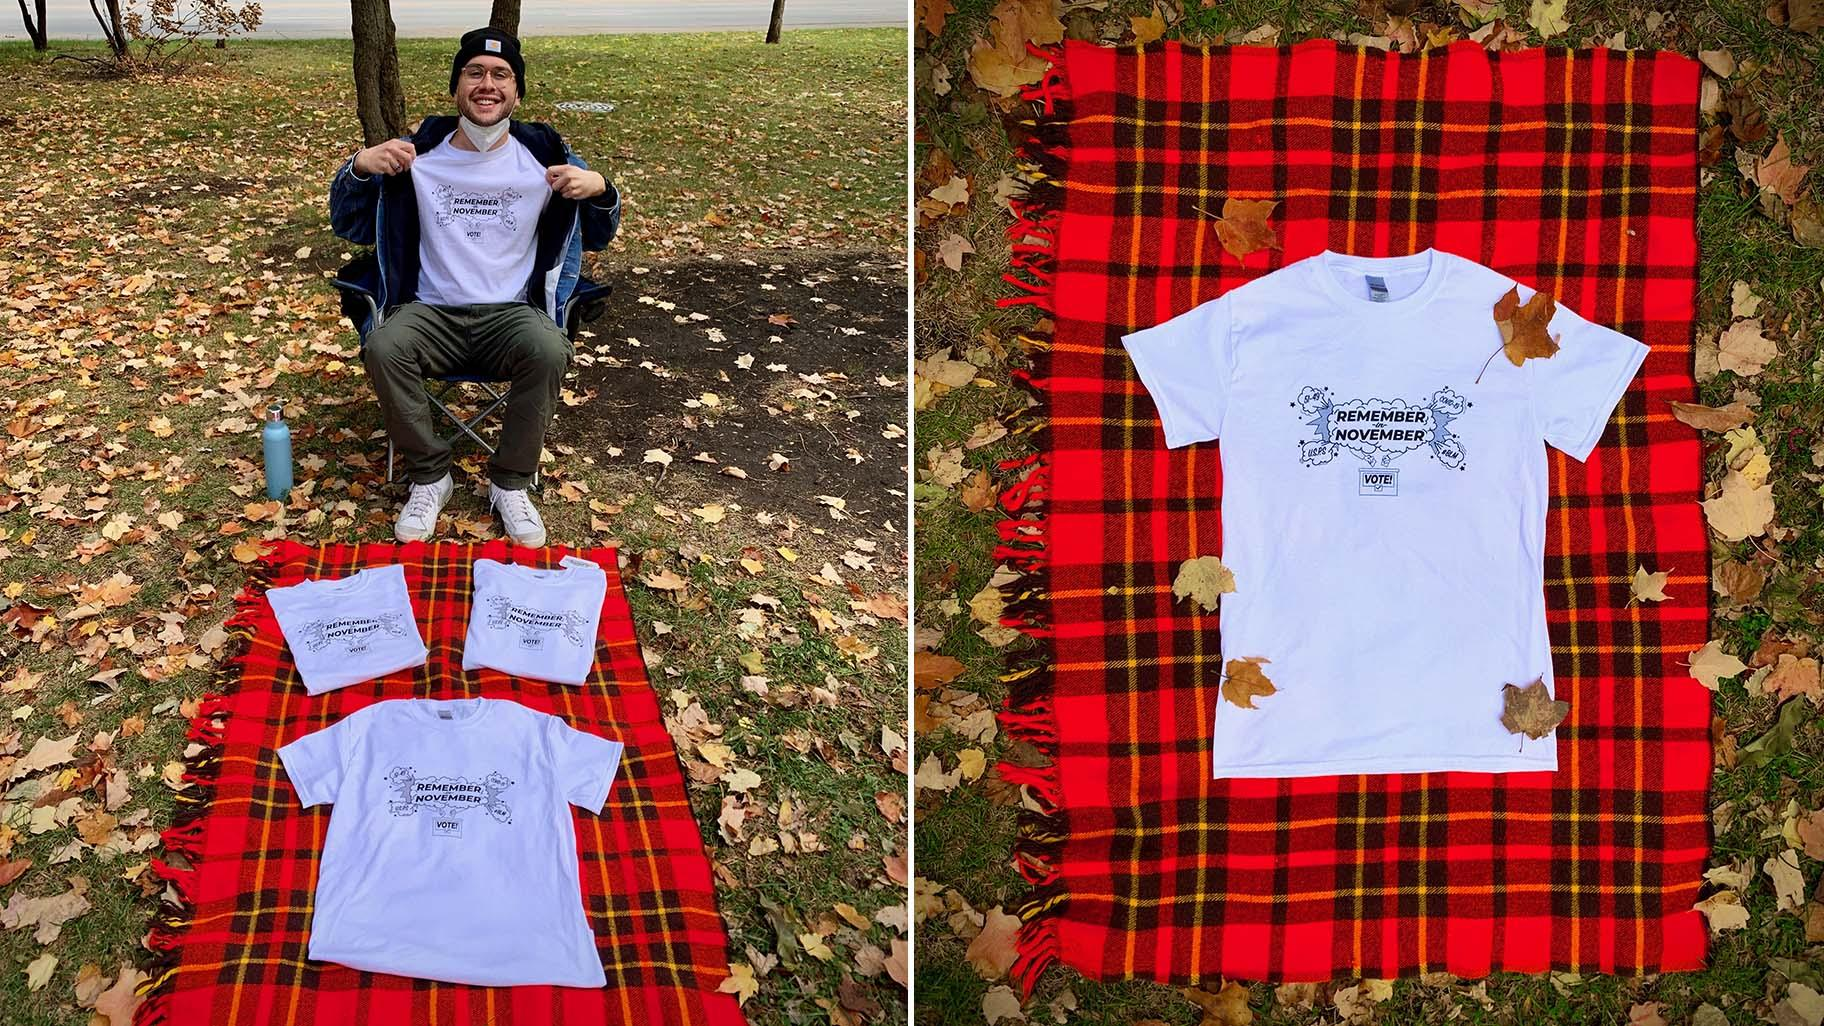 Left: Horace Nowell sells his shirts at the Logan Square Monument park on Oct. 4, 2020. (Ariel Parrella-Aureli / WTTW News) Right: A close-up of the T-shirt. (Courtesy of Horace Nowell)